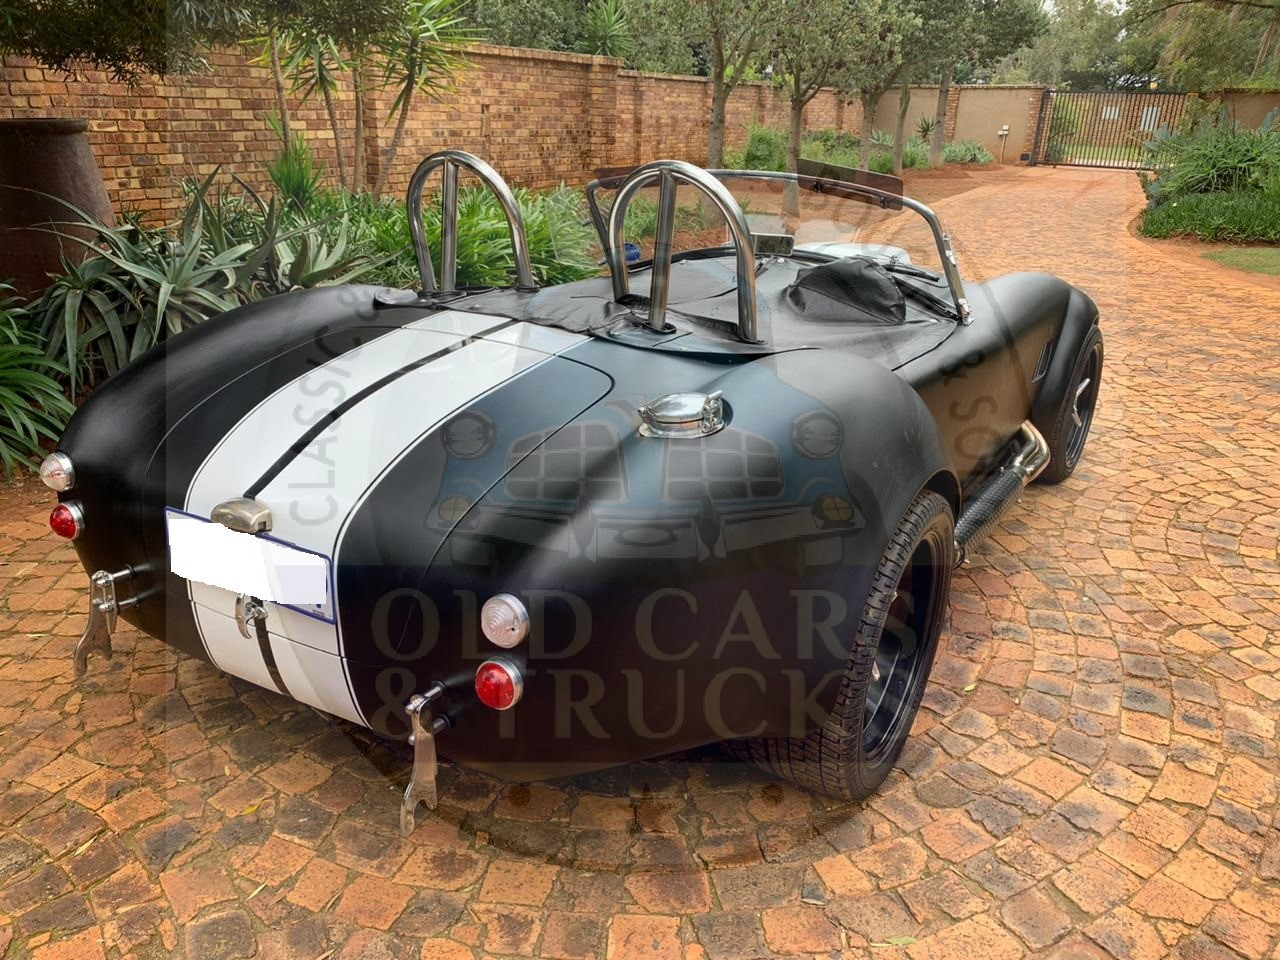 Stunning Cobra with new 351 V8 crate motor